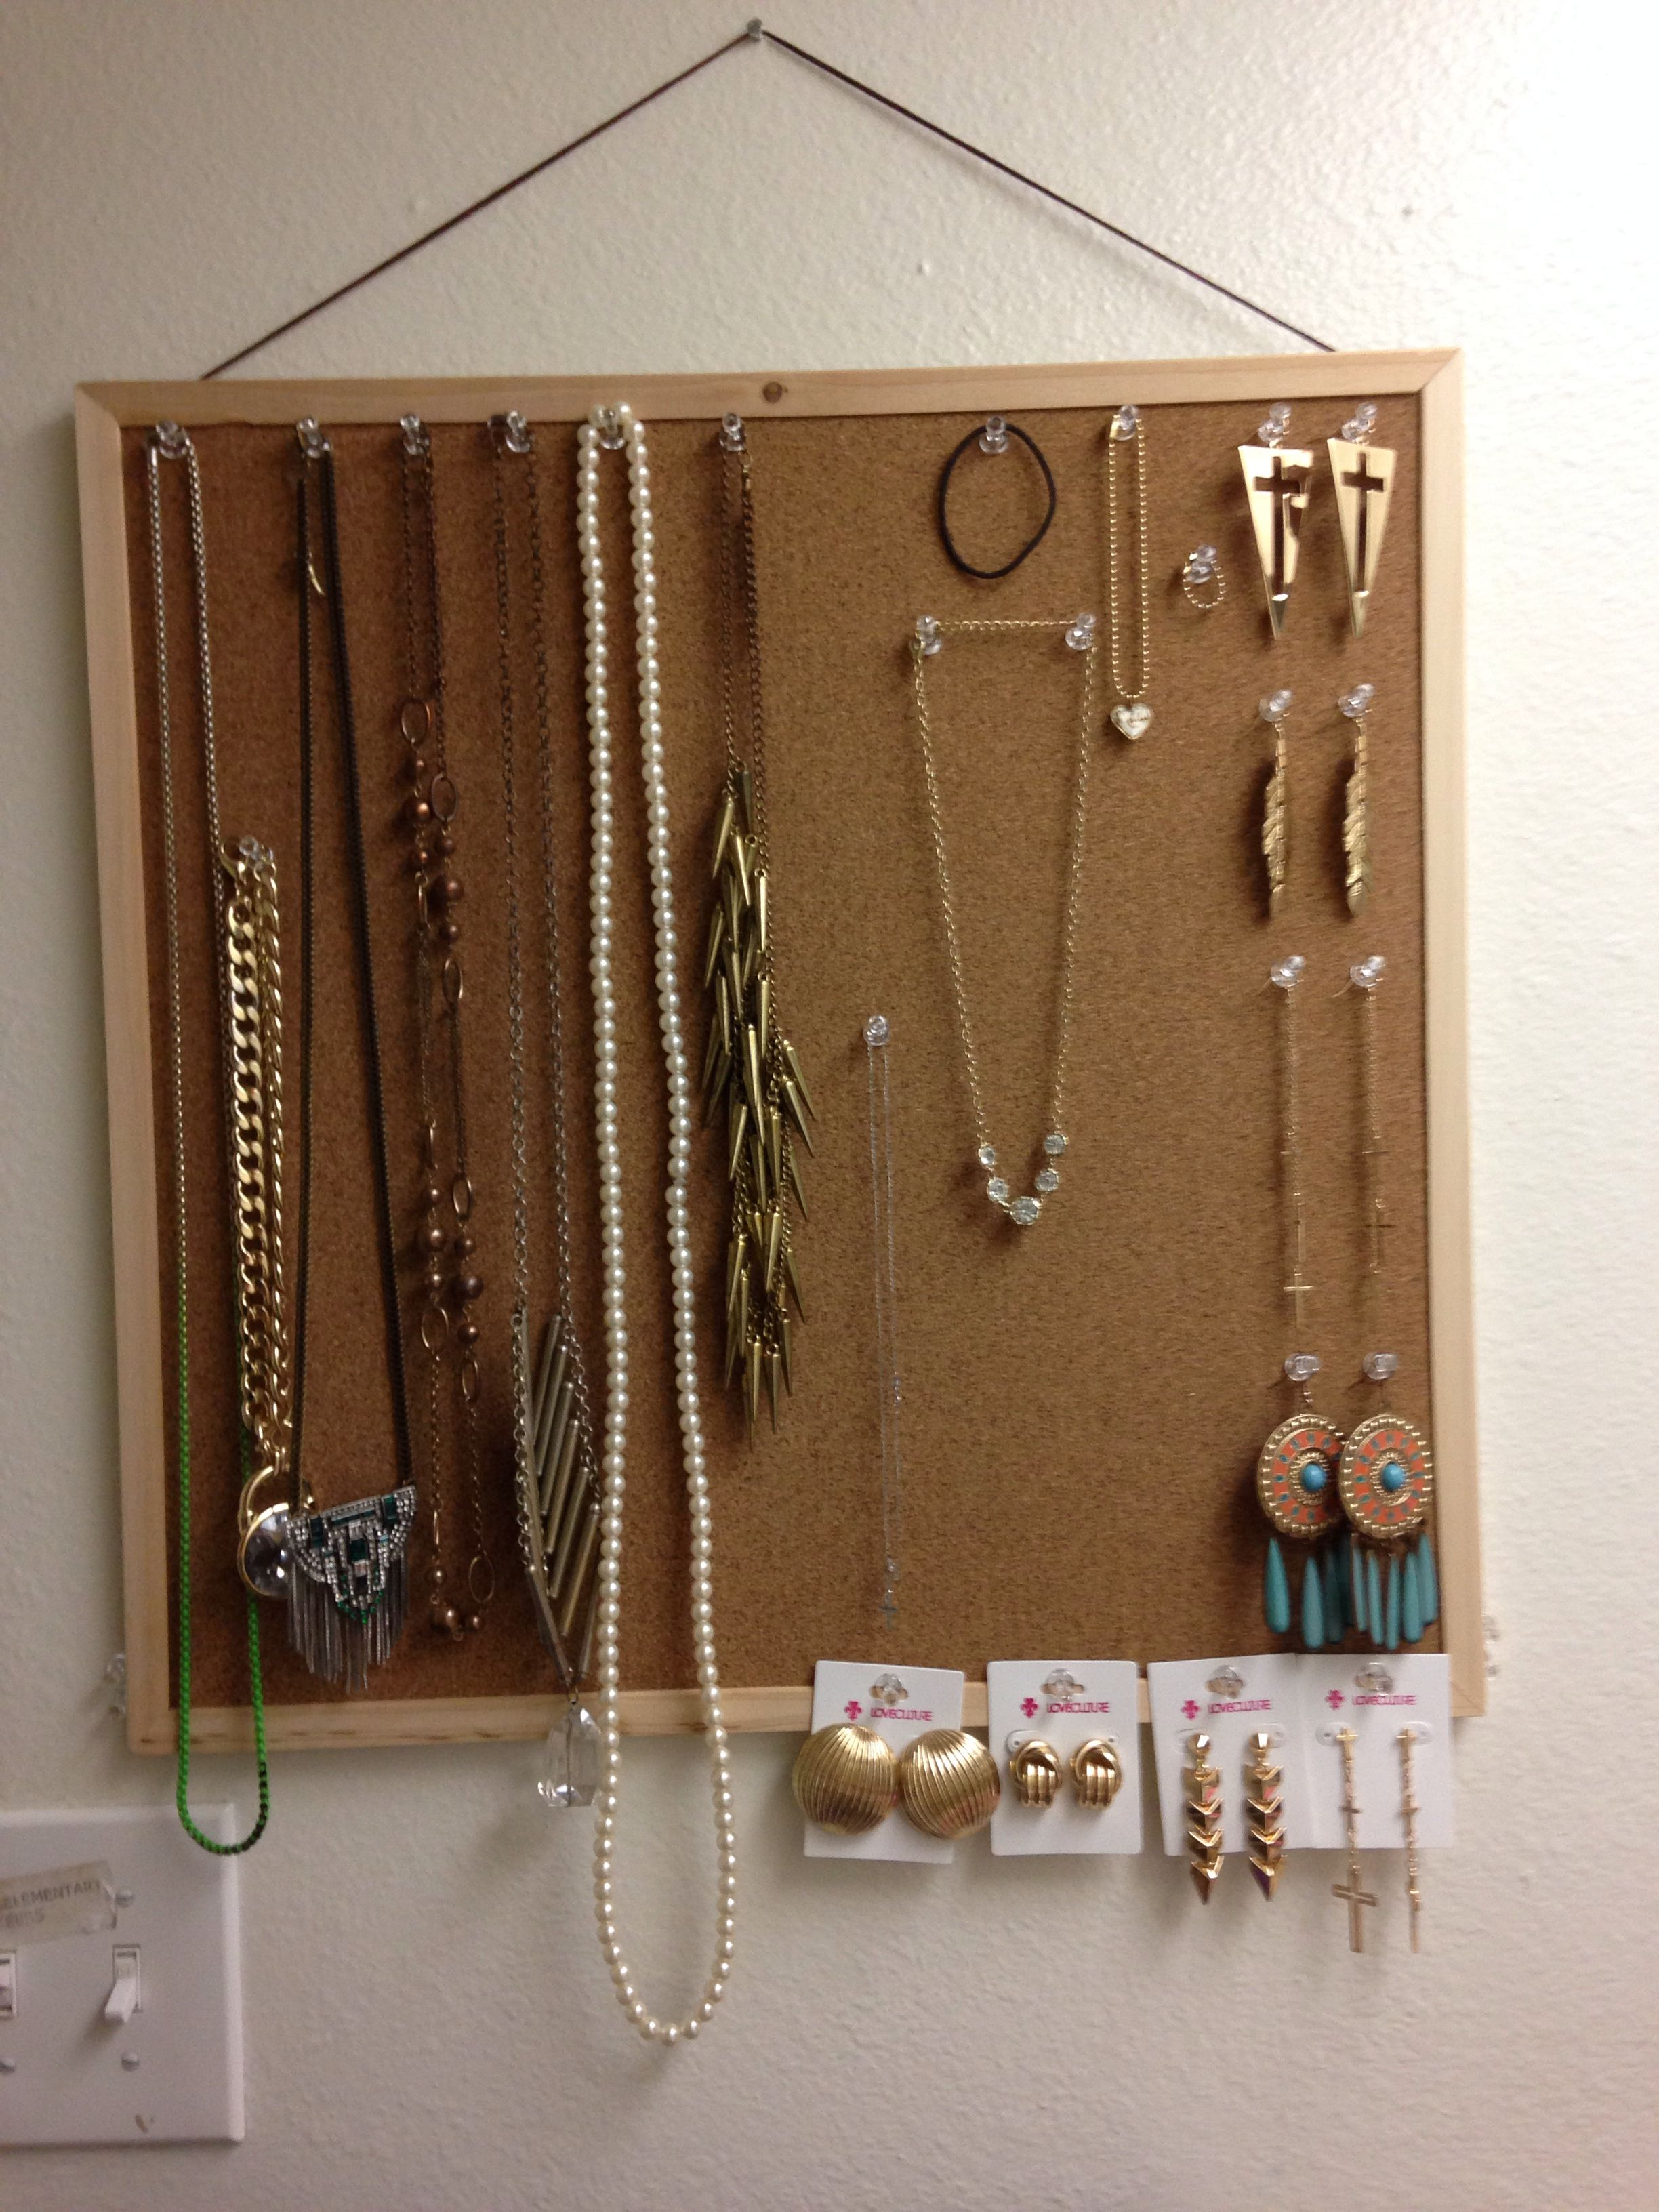 Purchased Cork Board And Thumb Tacks Under 5 At Daiso Store To